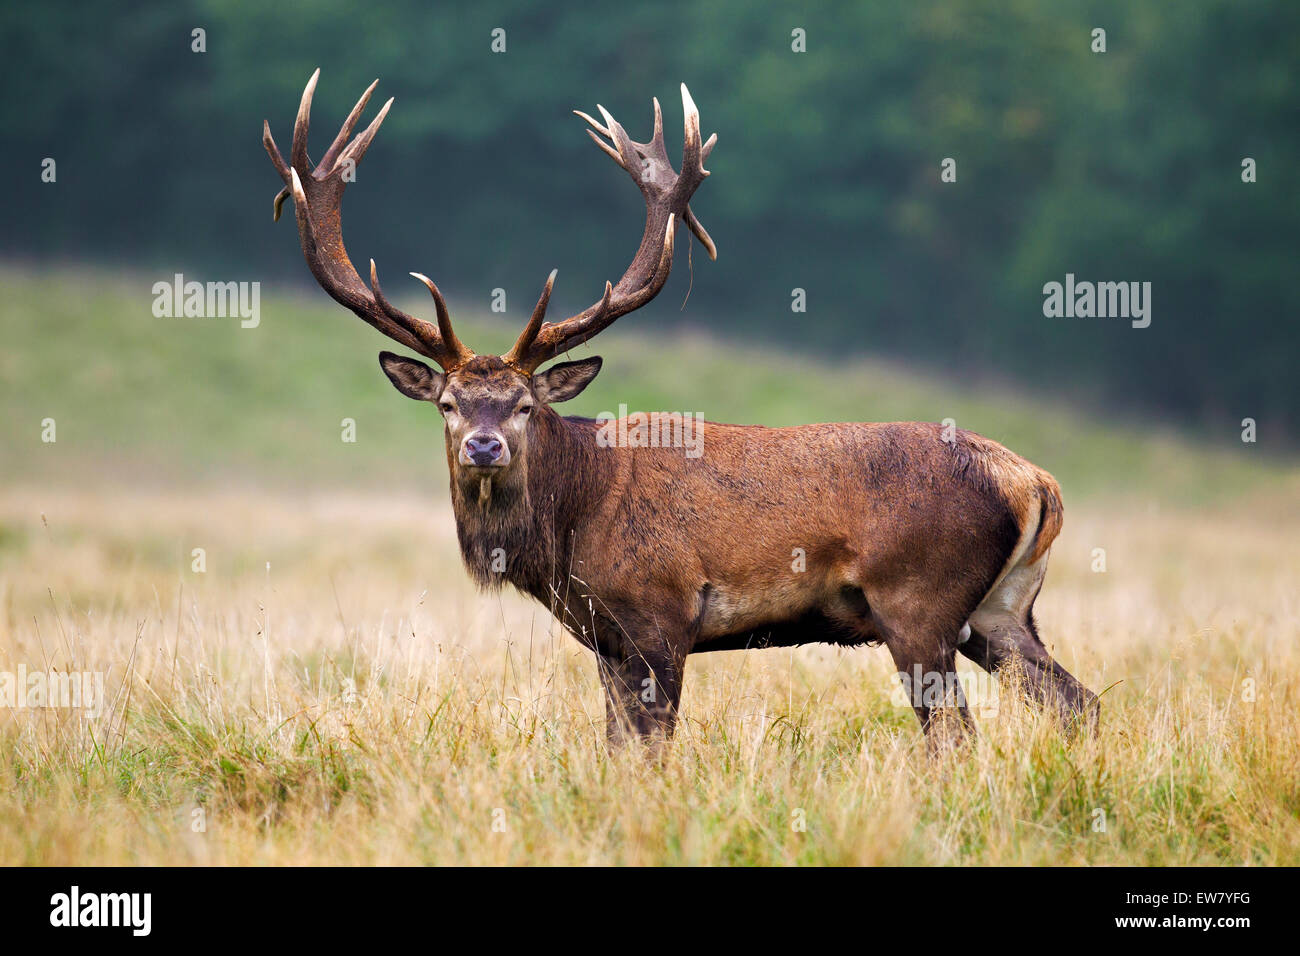 Red deer (Cervus elaphus) stag with huge antlers in grassland at forest's edge during the rut in autumn Stock Photo